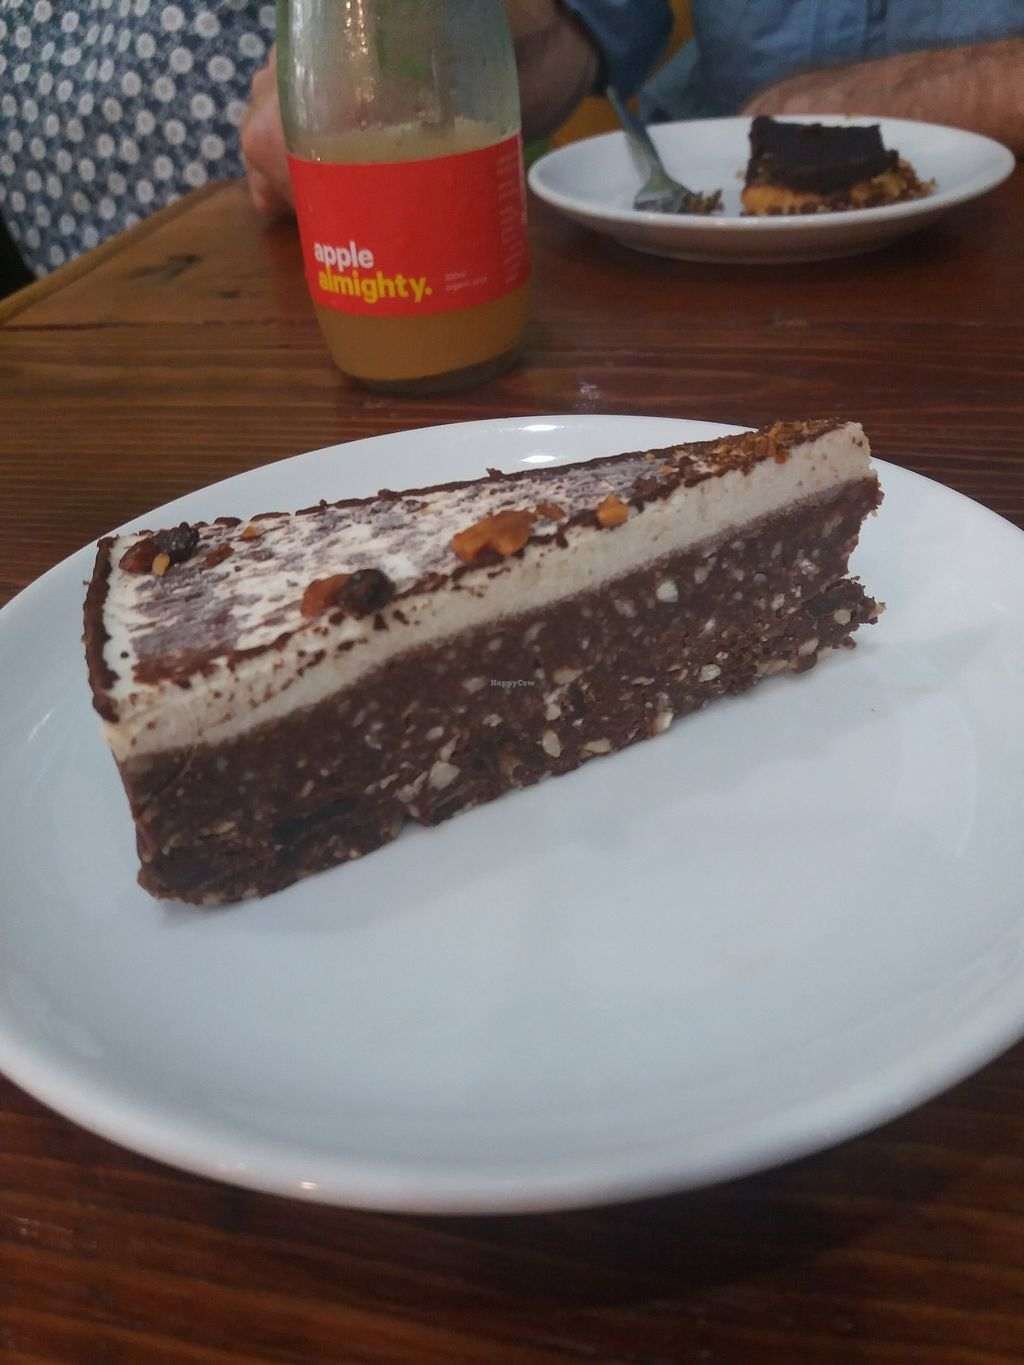 """Photo of Hari's Vegetarian  by <a href=""""/members/profile/veganvirtues"""">veganvirtues</a> <br/>Choc cheese cake <br/> April 2, 2018  - <a href='/contact/abuse/image/32555/379703'>Report</a>"""